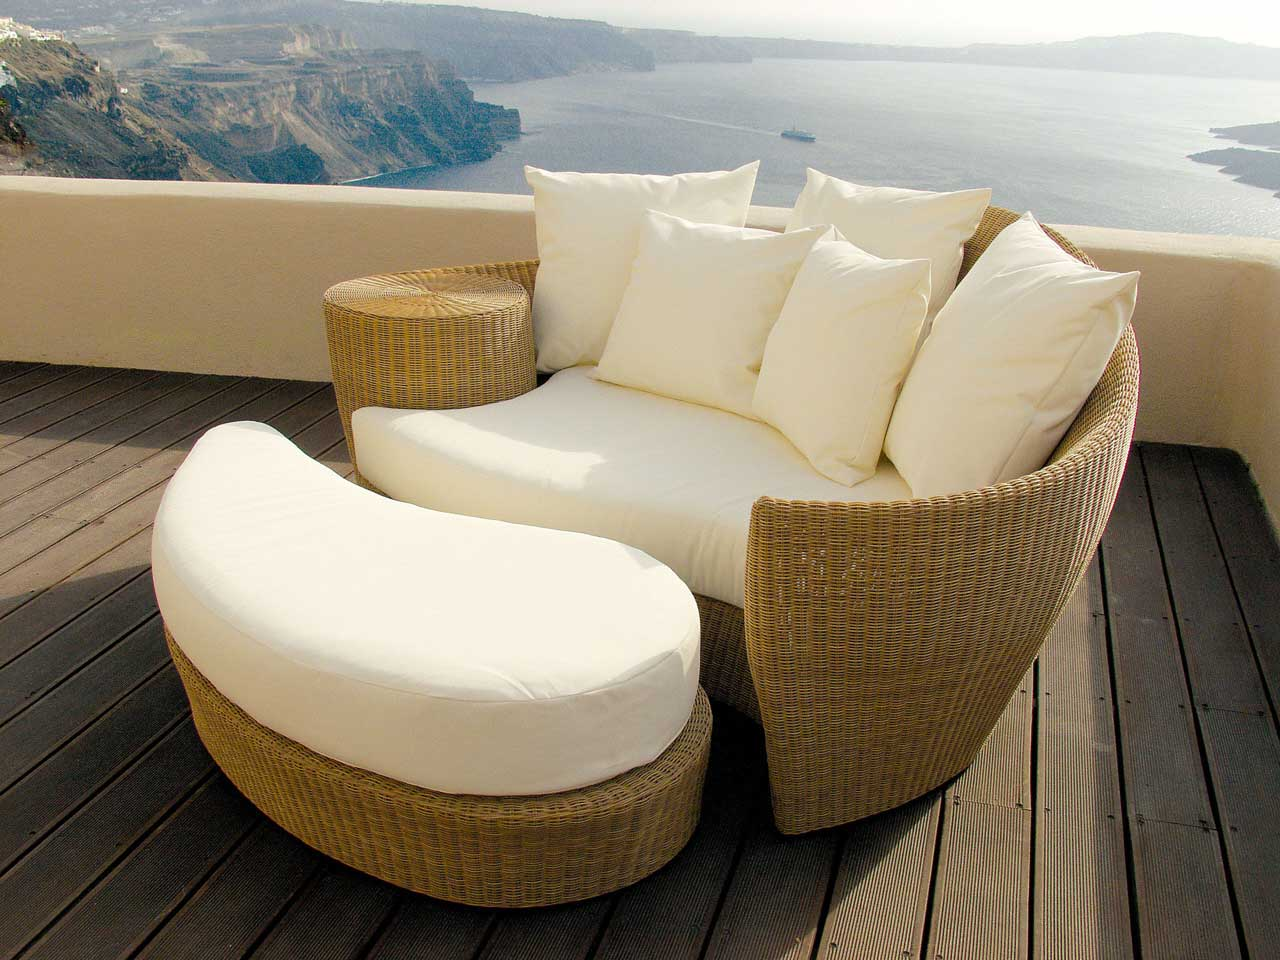 Enjoy The Summer With Patio Lounger